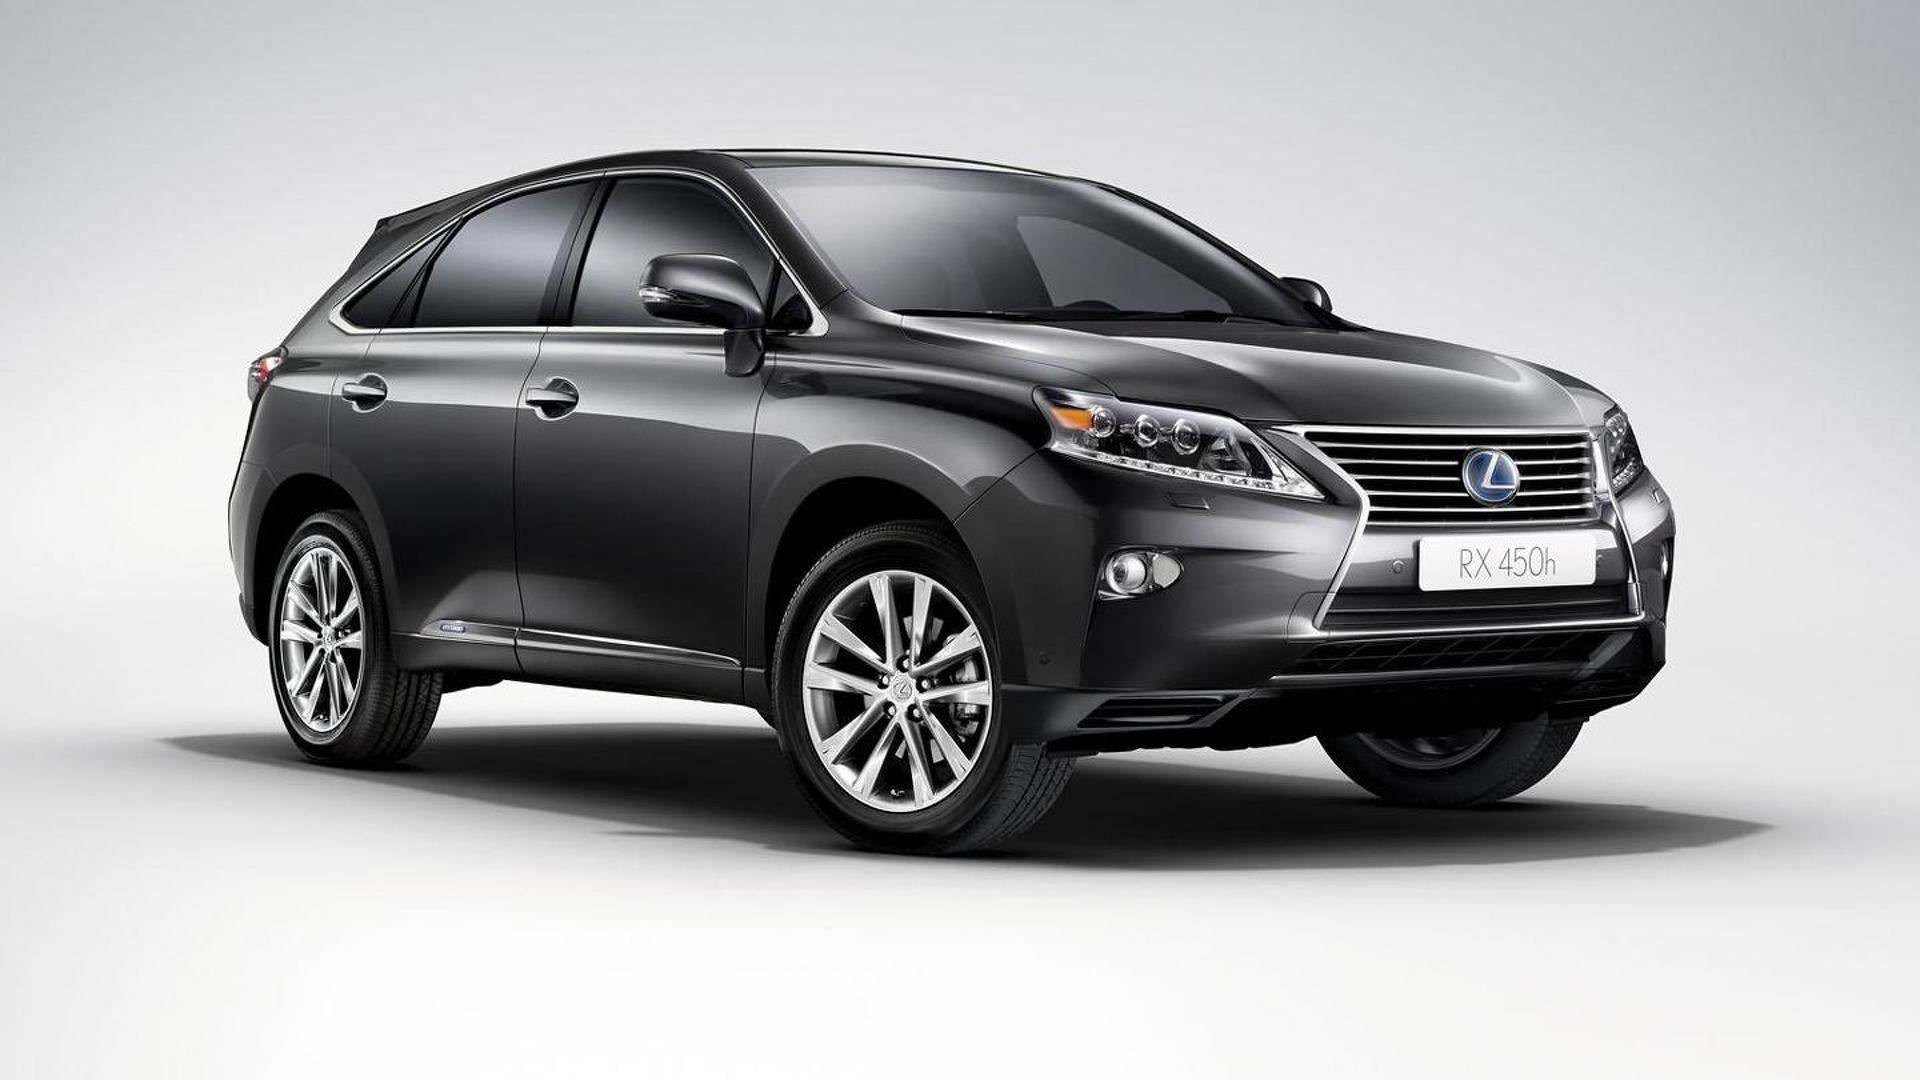 2016 Lexus RX could have three row seating - report